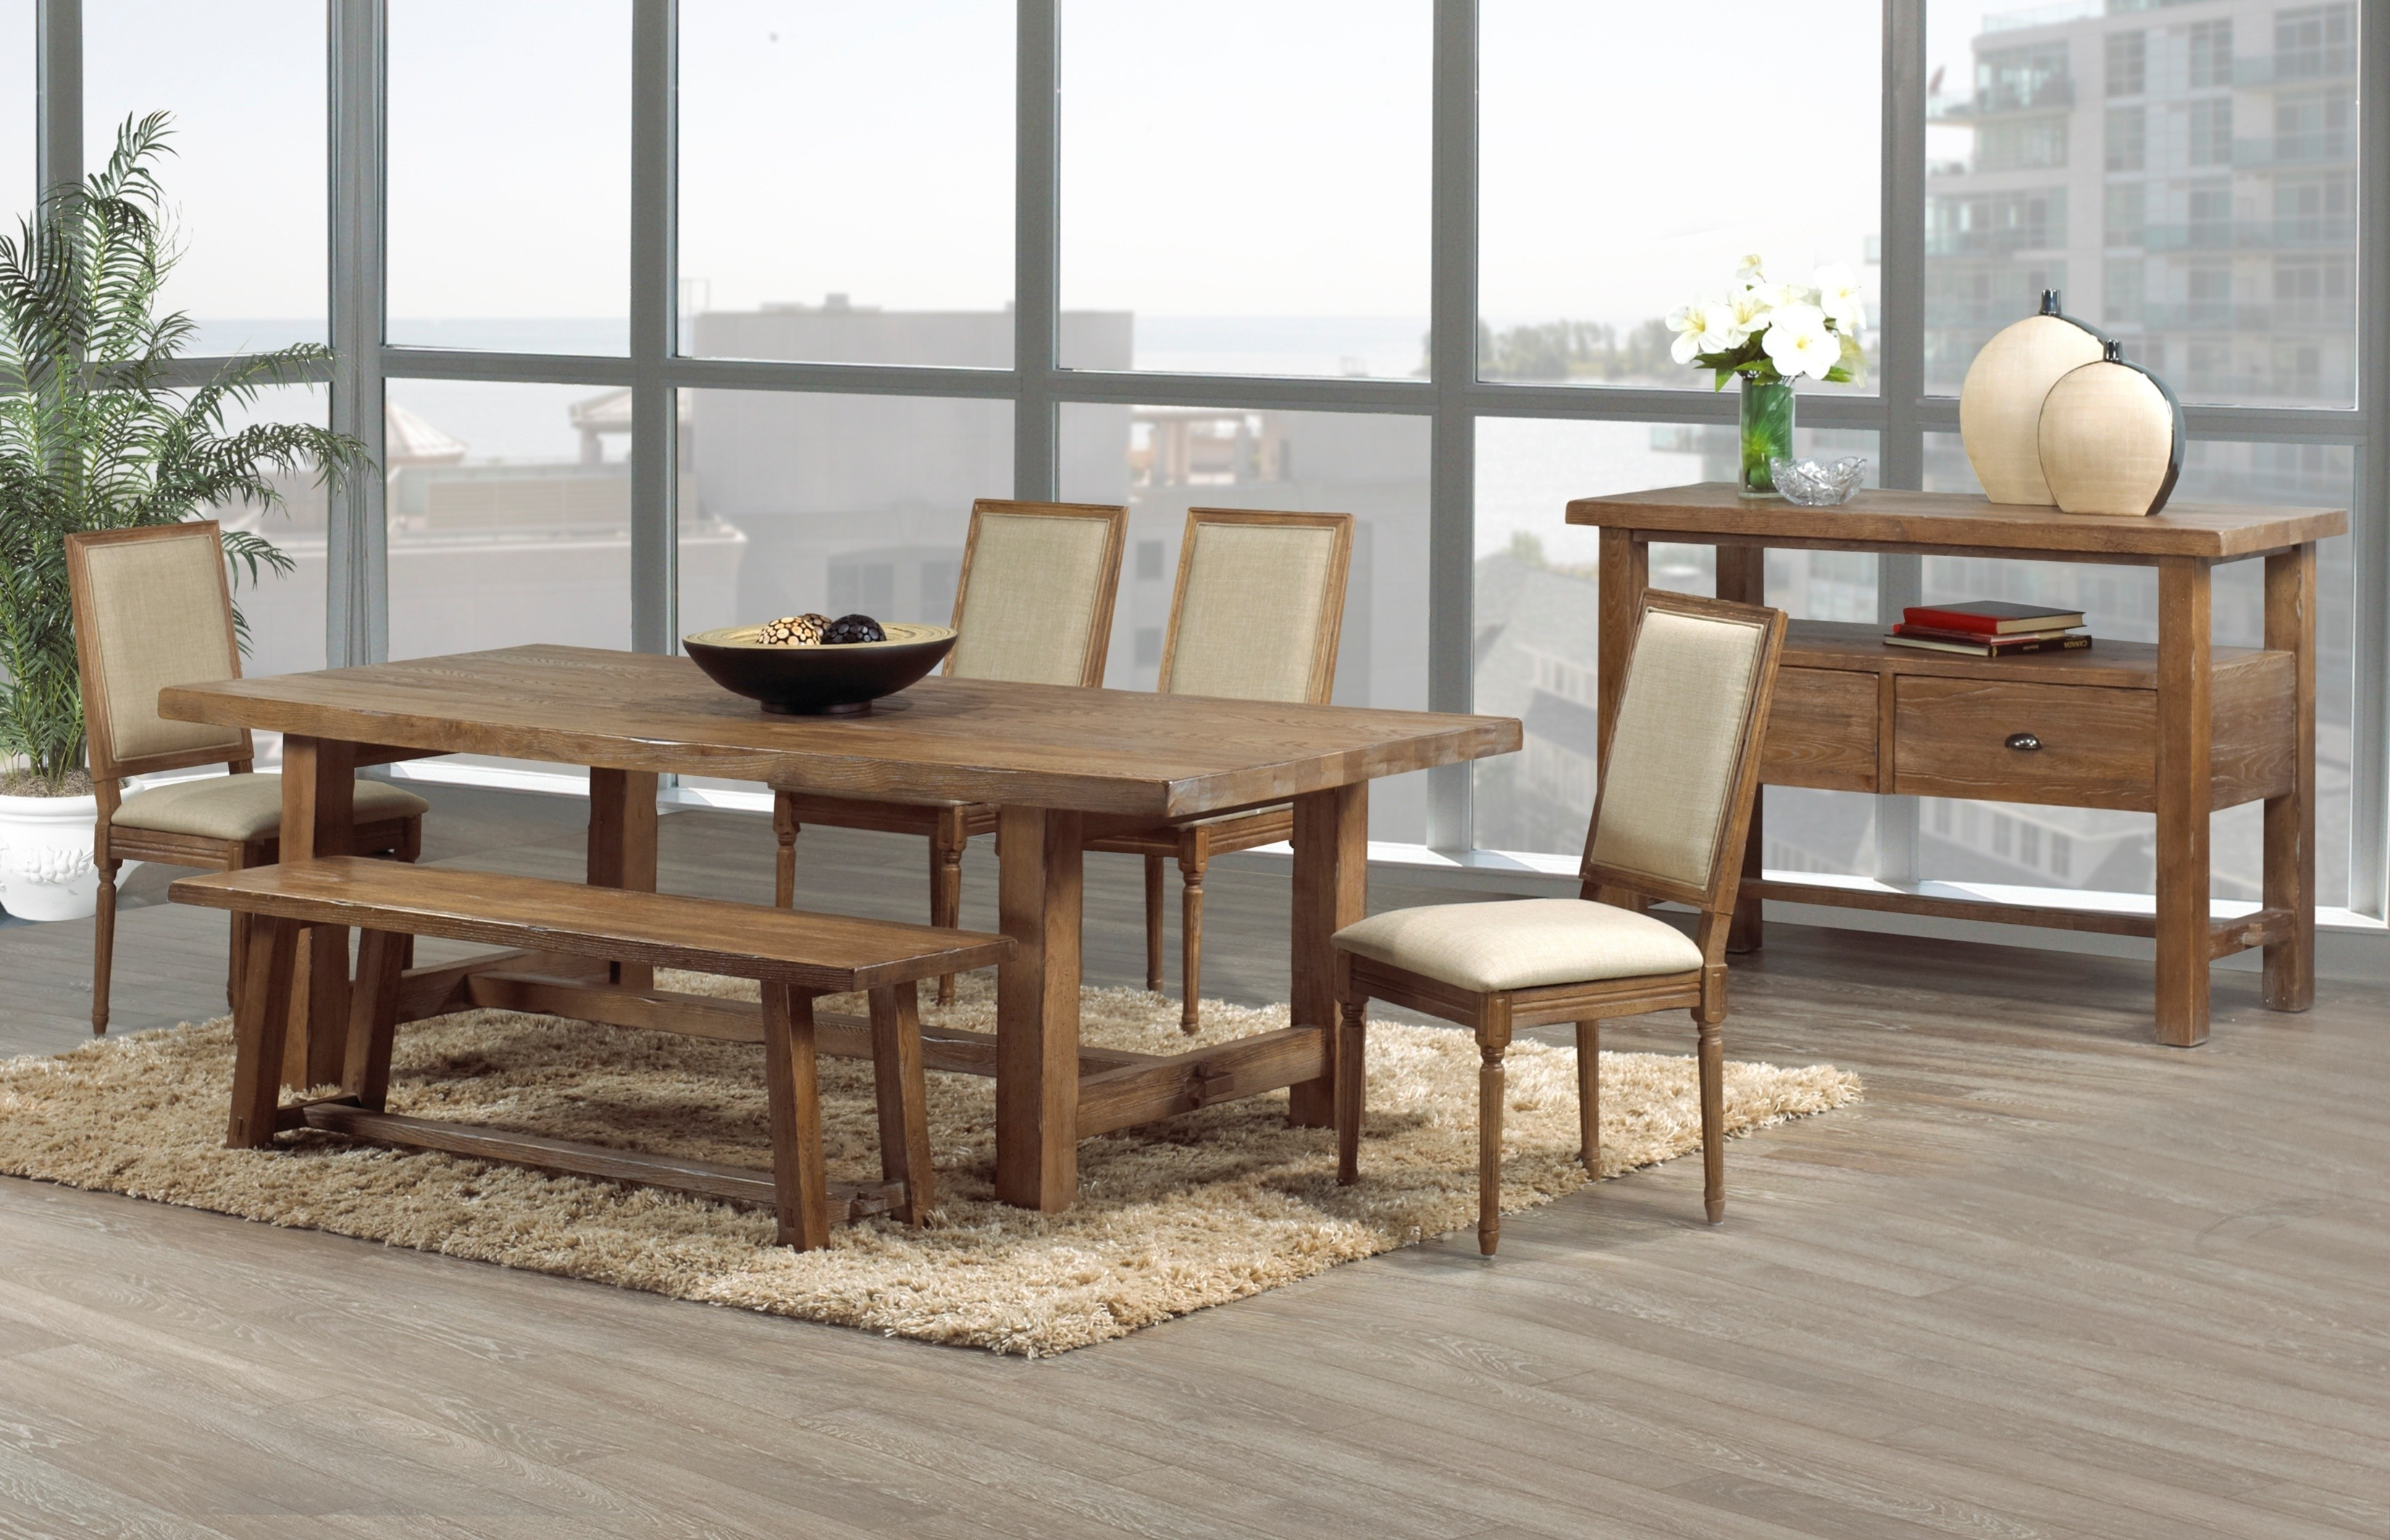 Marvelous Rustic Large Dining Table 9 Room Tables Set Round – layjao